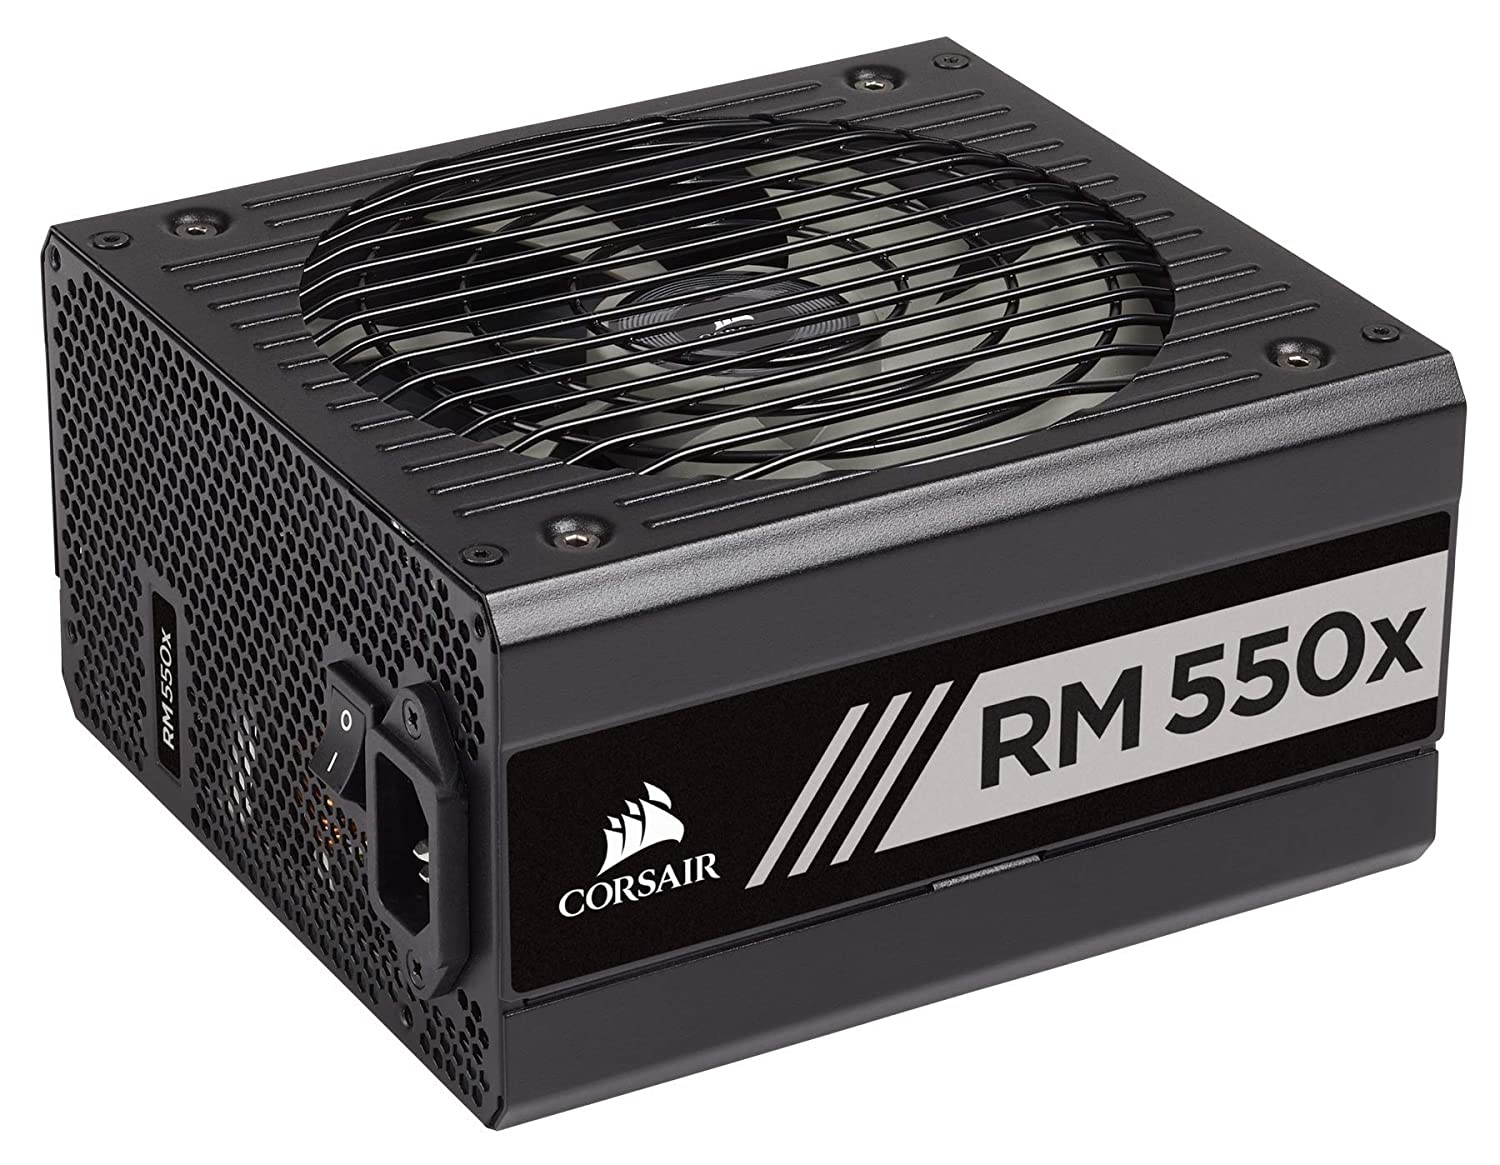 Corsair RM750 RM Series 750 W Fully Modular ATX Power Supply 80 Plus Gold Certified Black